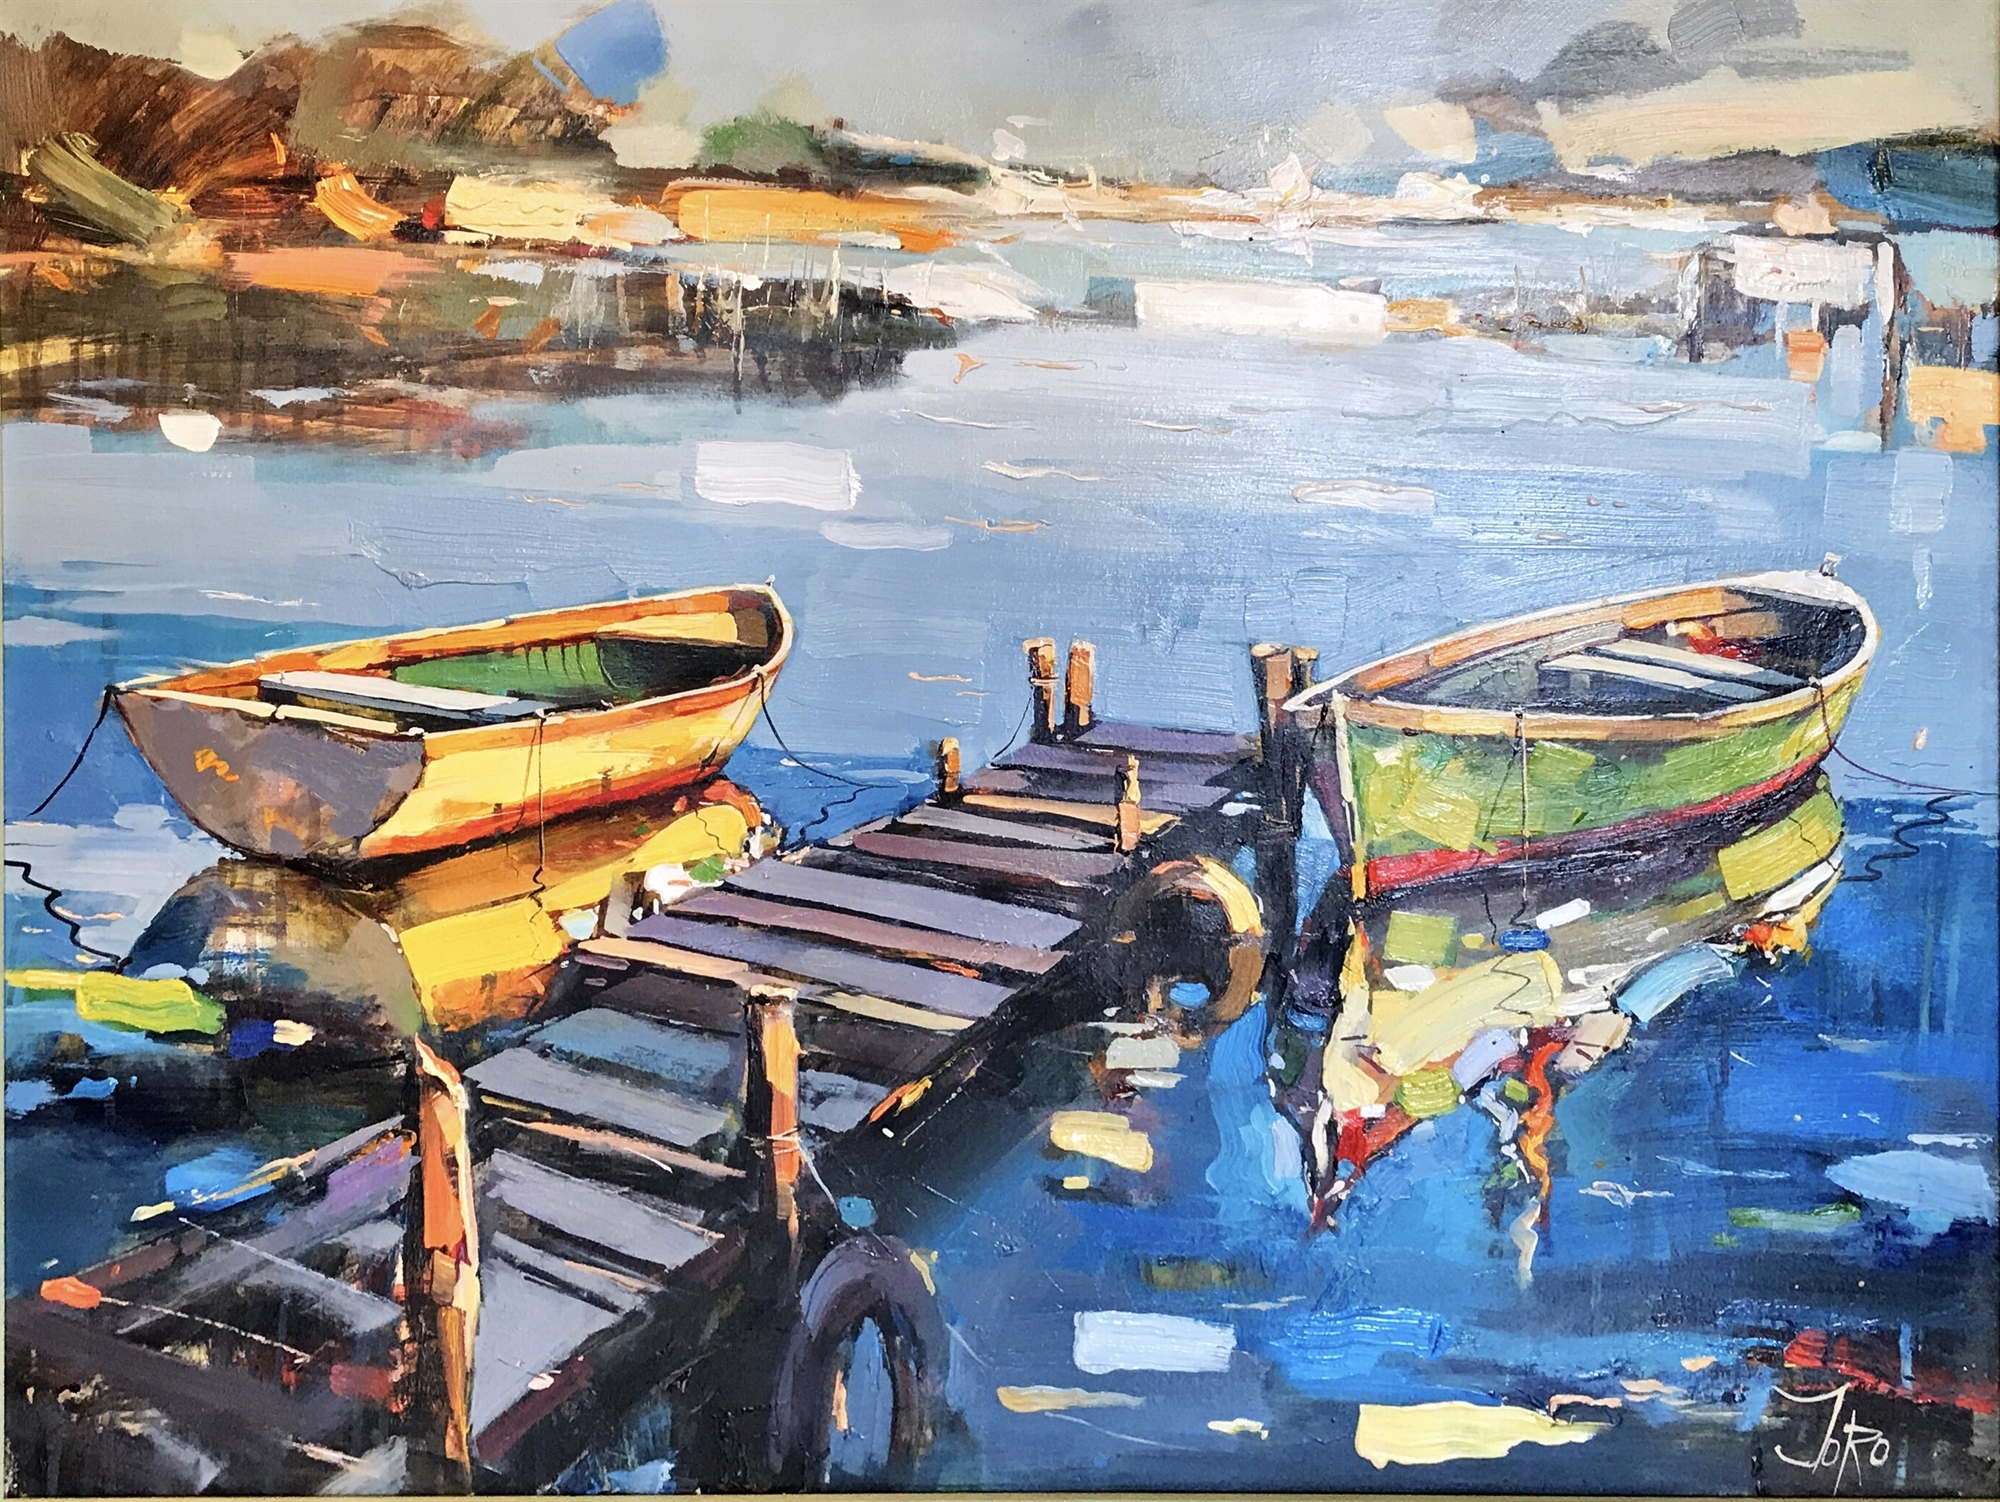 Fishing Boats on the Quay by Georgi Kolarov